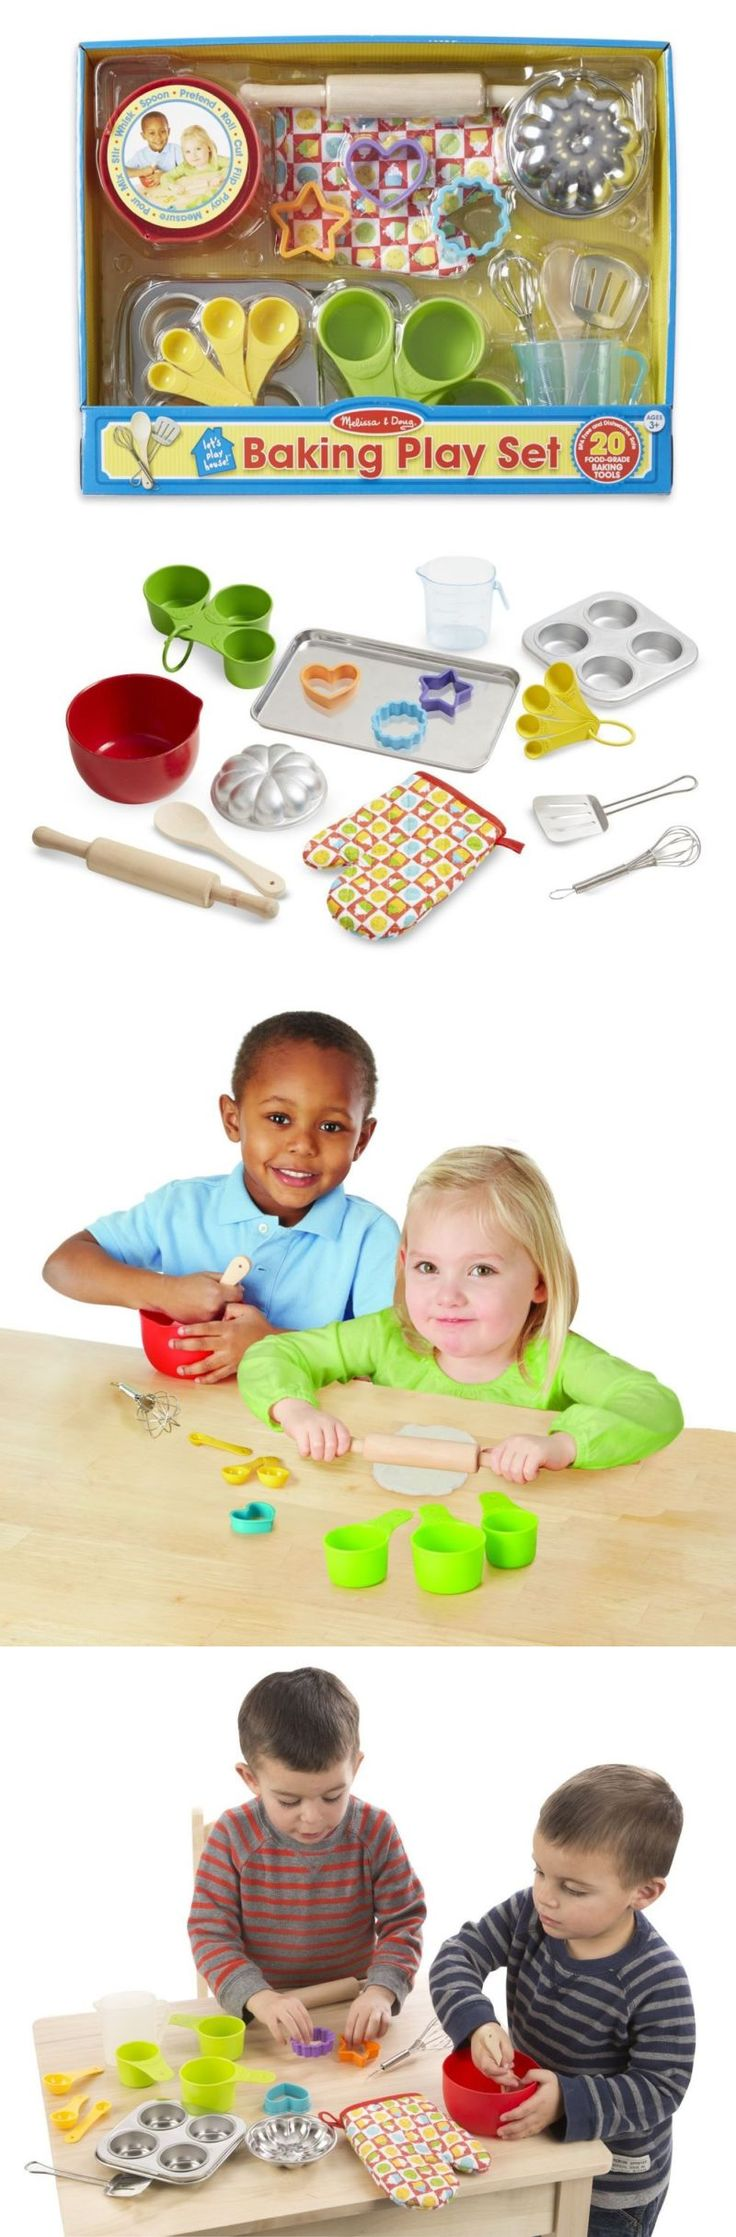 Melissa And Doug Retro Kitchen The 25 Best Ideas About Play Kitchen Accessories On Pinterest